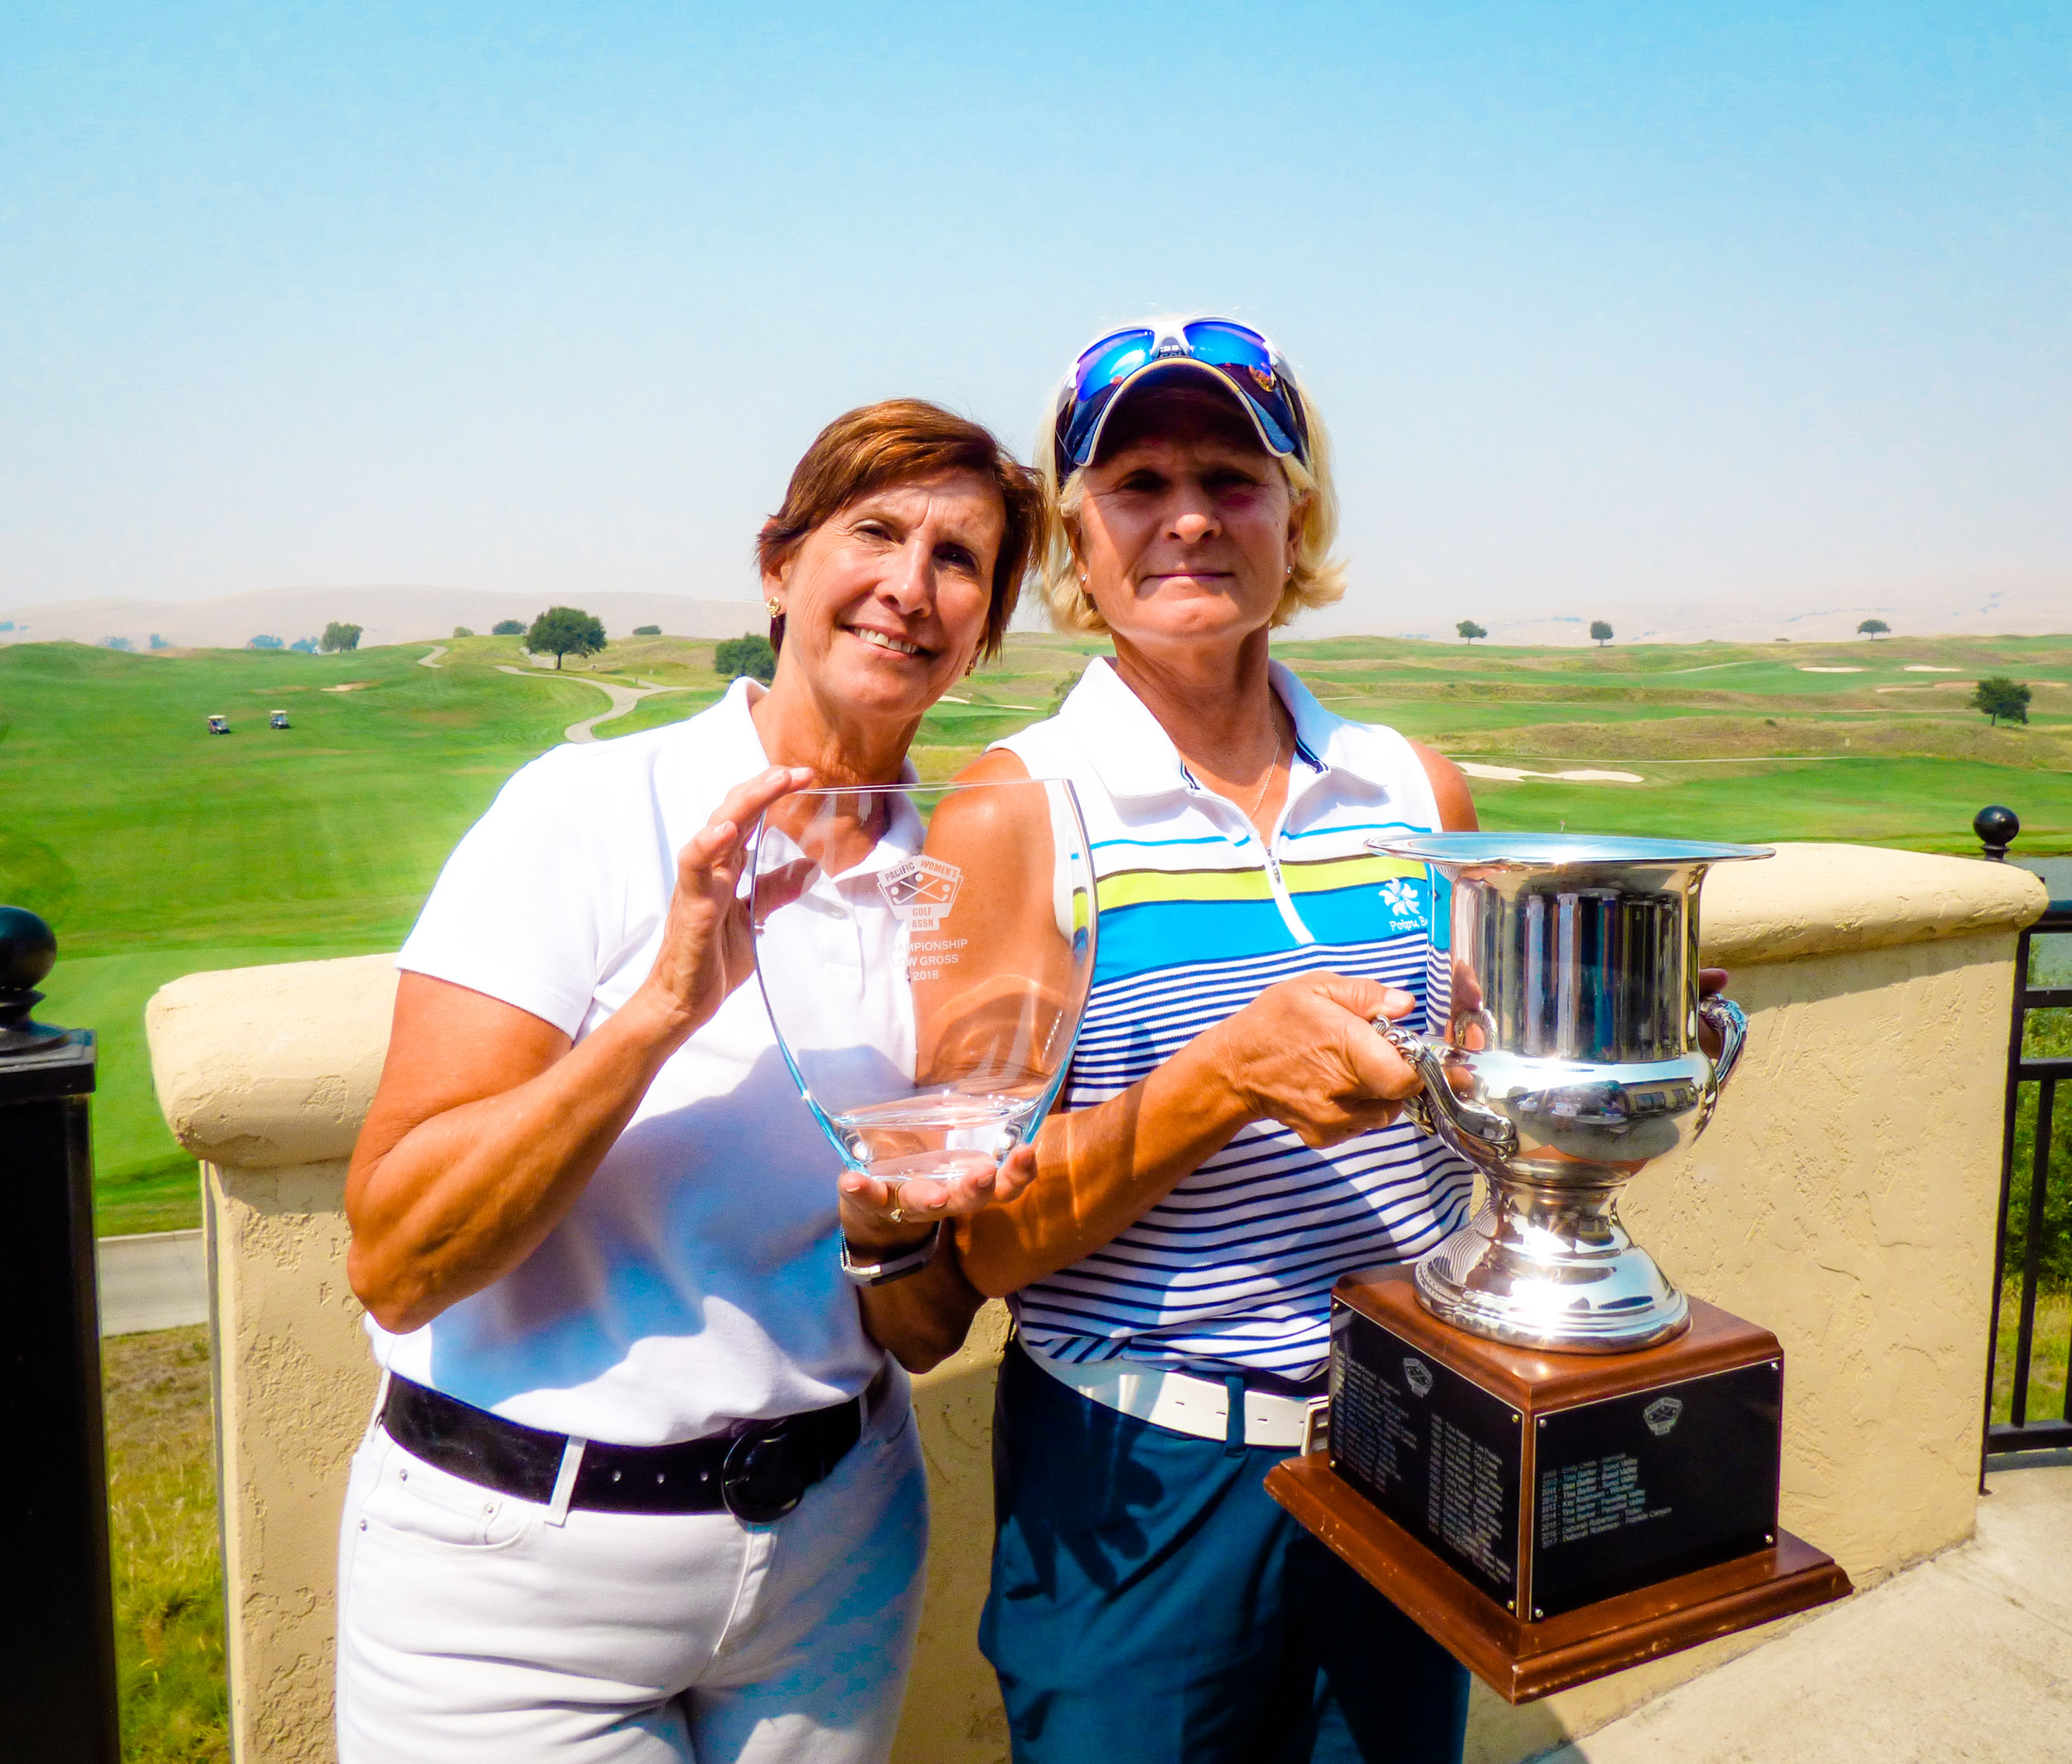 From left to right: Lynn Harvey, PWGA President, and Cindy Aafedt, PWGA Open 2018 Winner